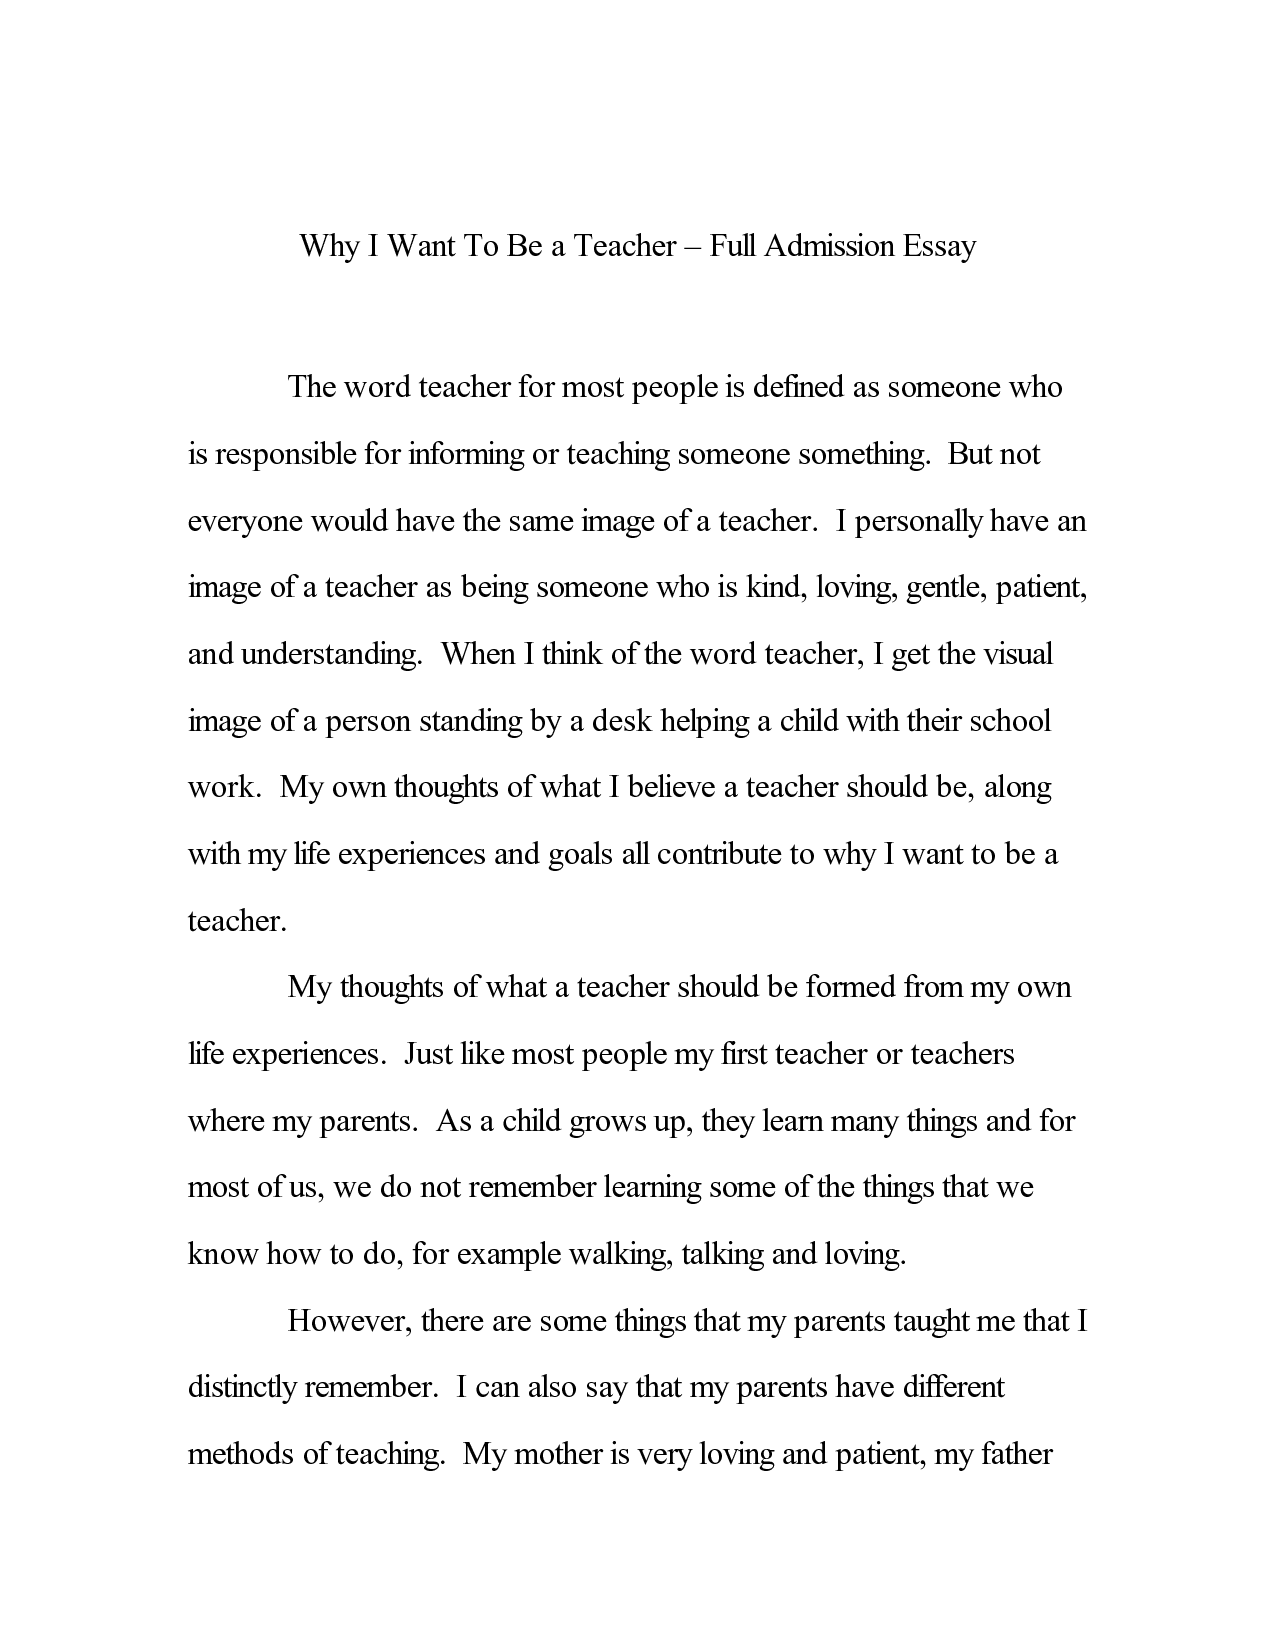 Write my admissions essay best teacher